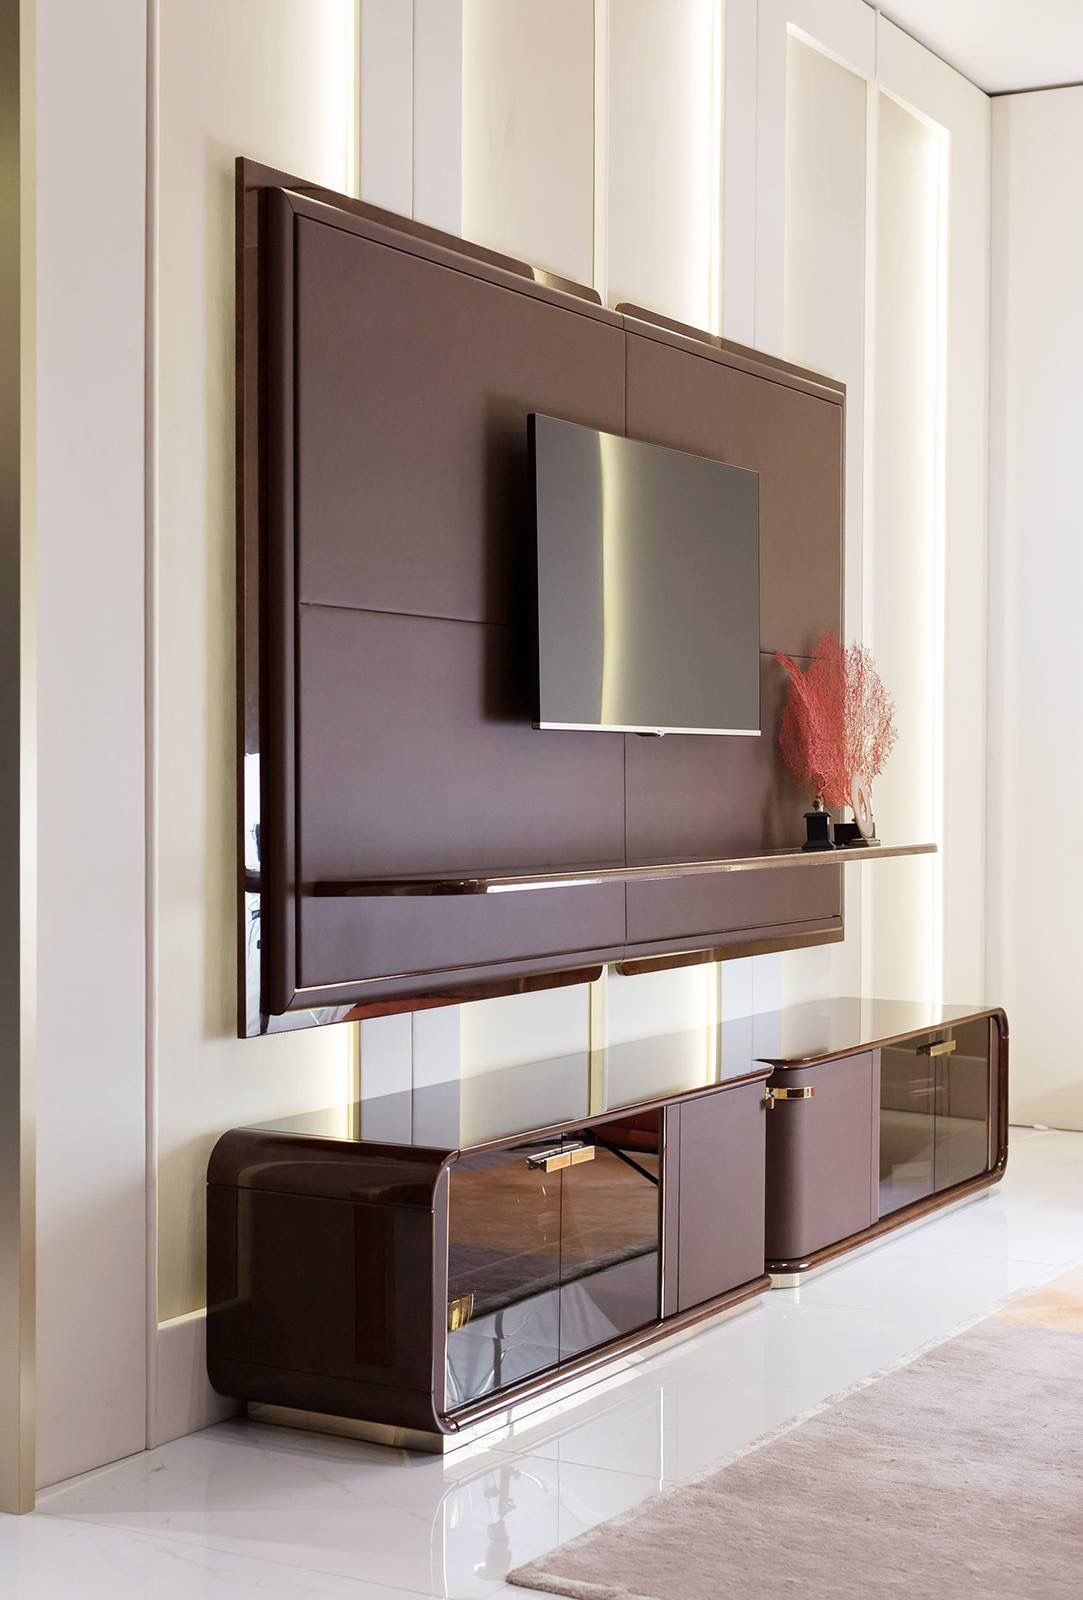 Tv Unit In Living Room: Pin By Shivika Dua On Wardrobes & Tv Units